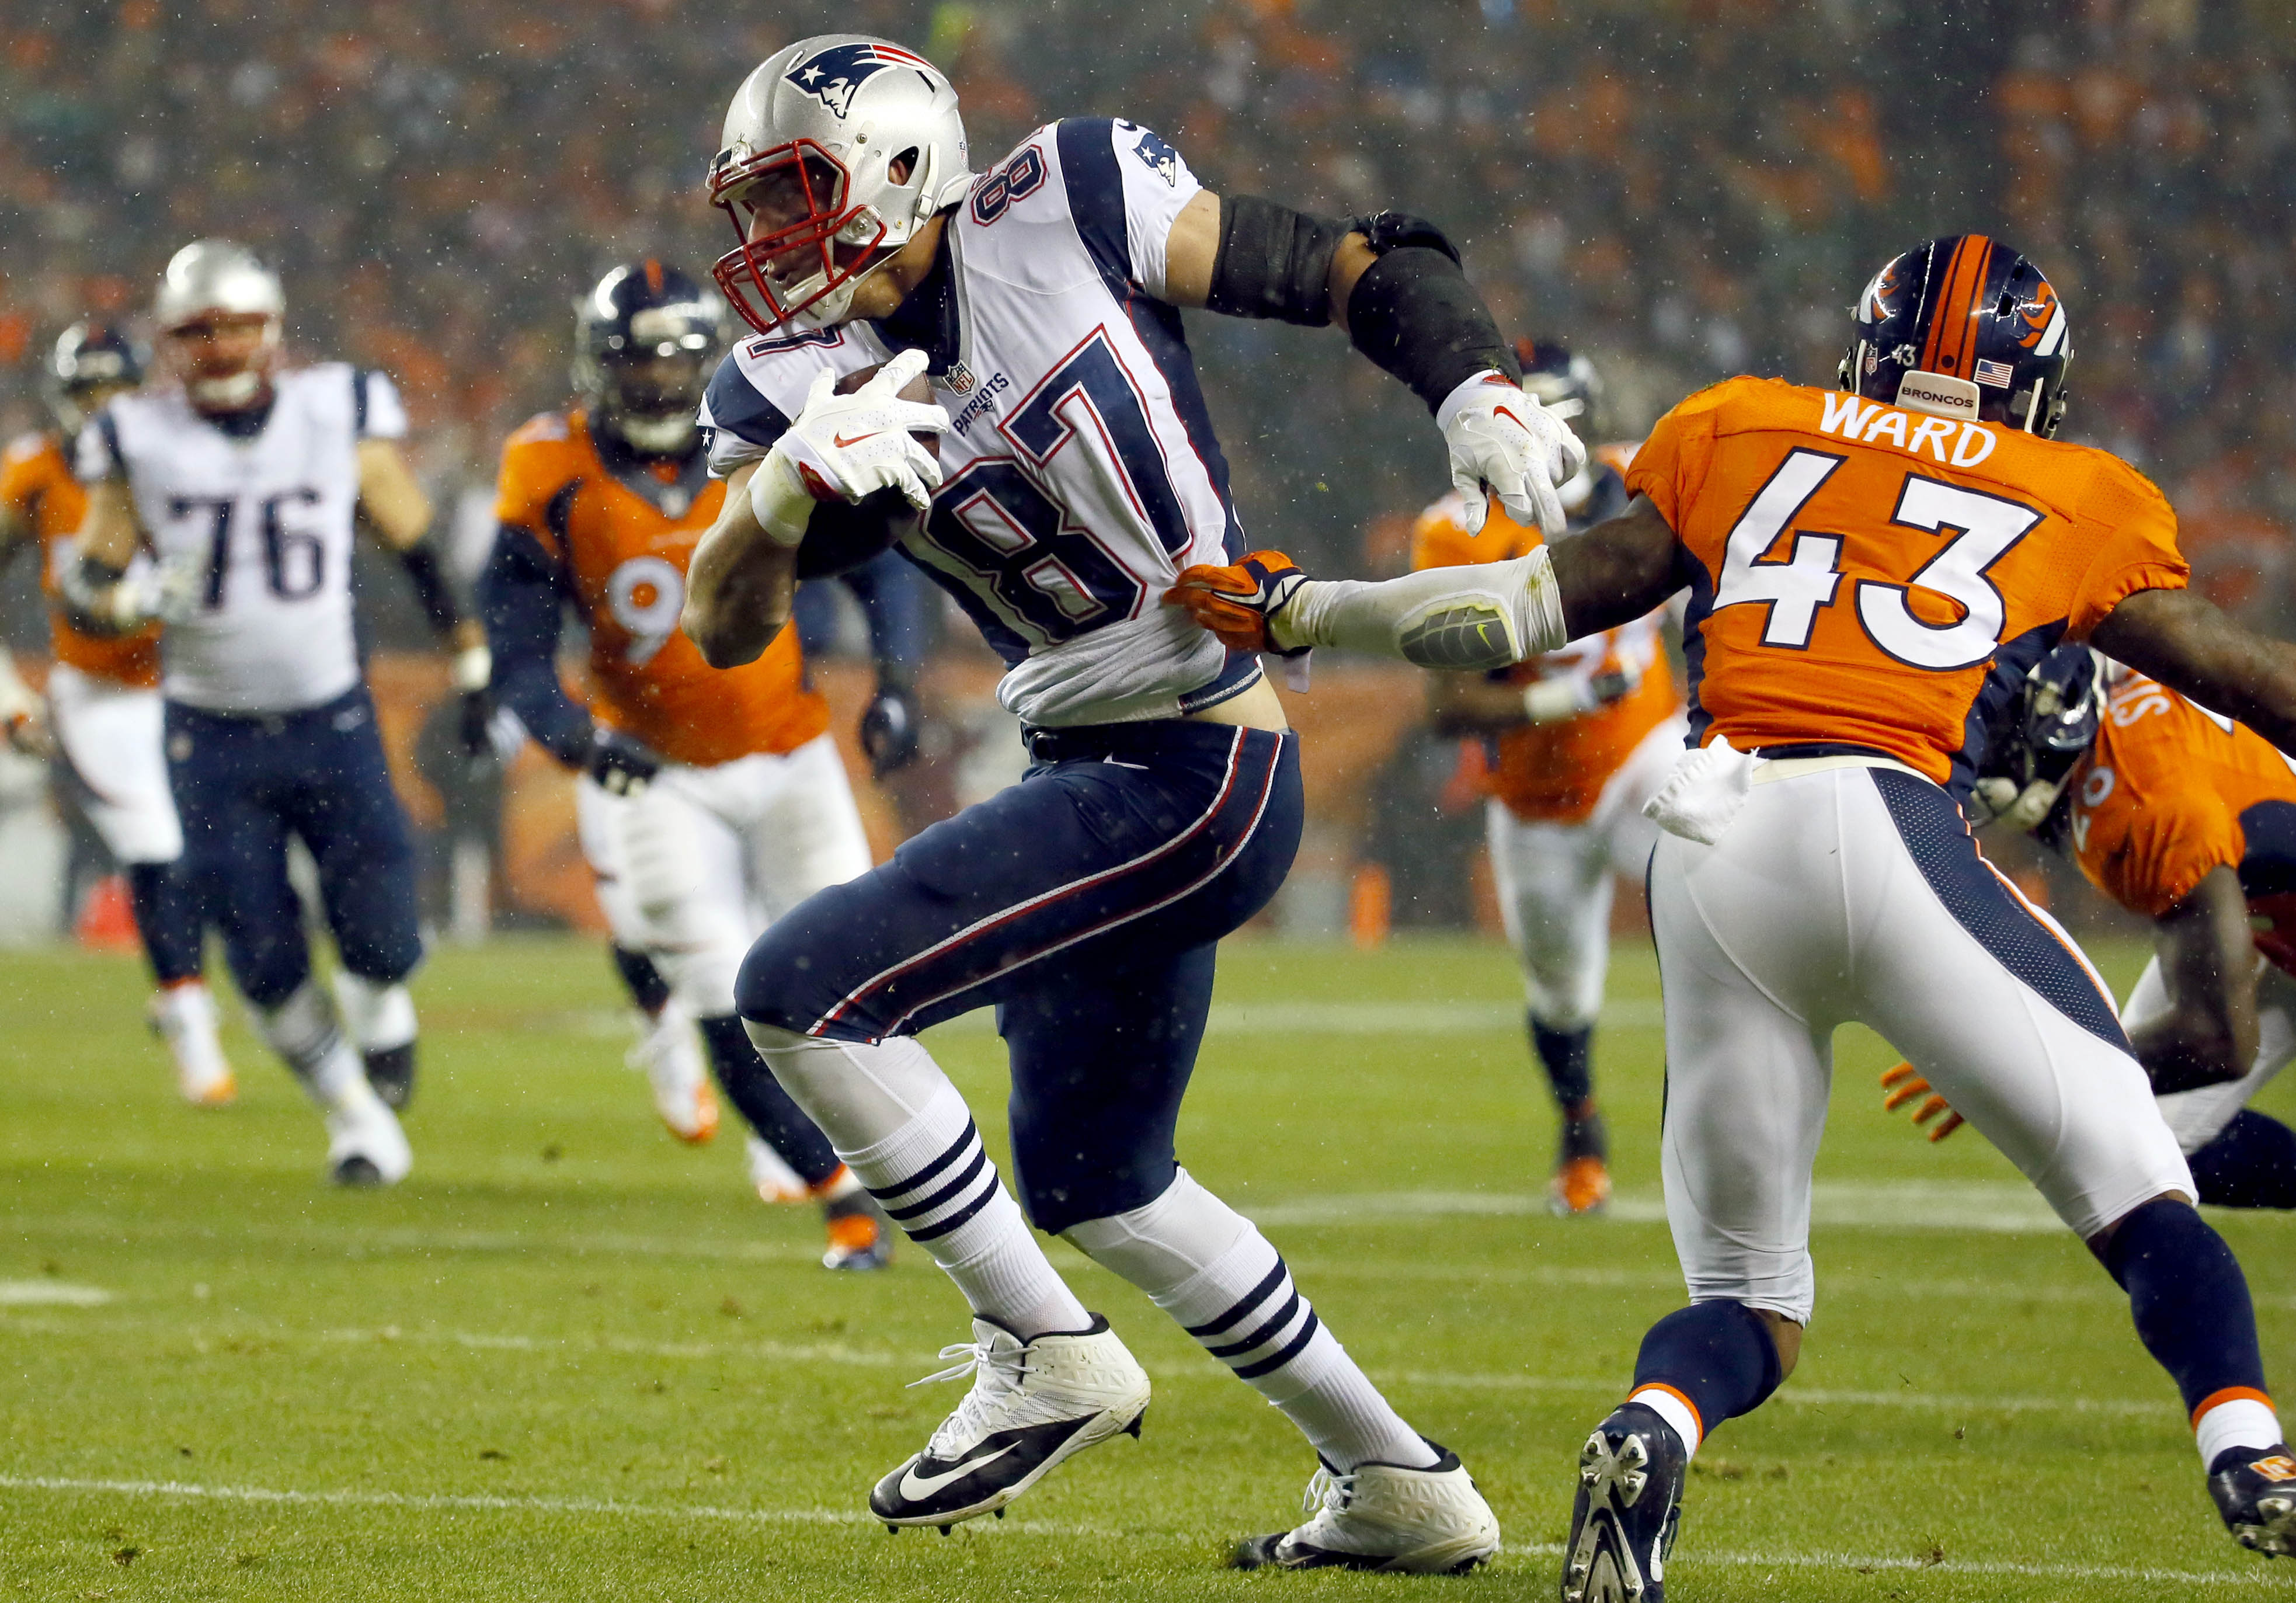 New England Patriots tight end Rob Gronkowski (87) breaks free from Denver Broncos strong safety T.J. Ward (43) for a touchdown during the first half of an NFL football game, Sunday, Nov. 29, 2015, in Denver. (AP Photo/Jack Dempsey)